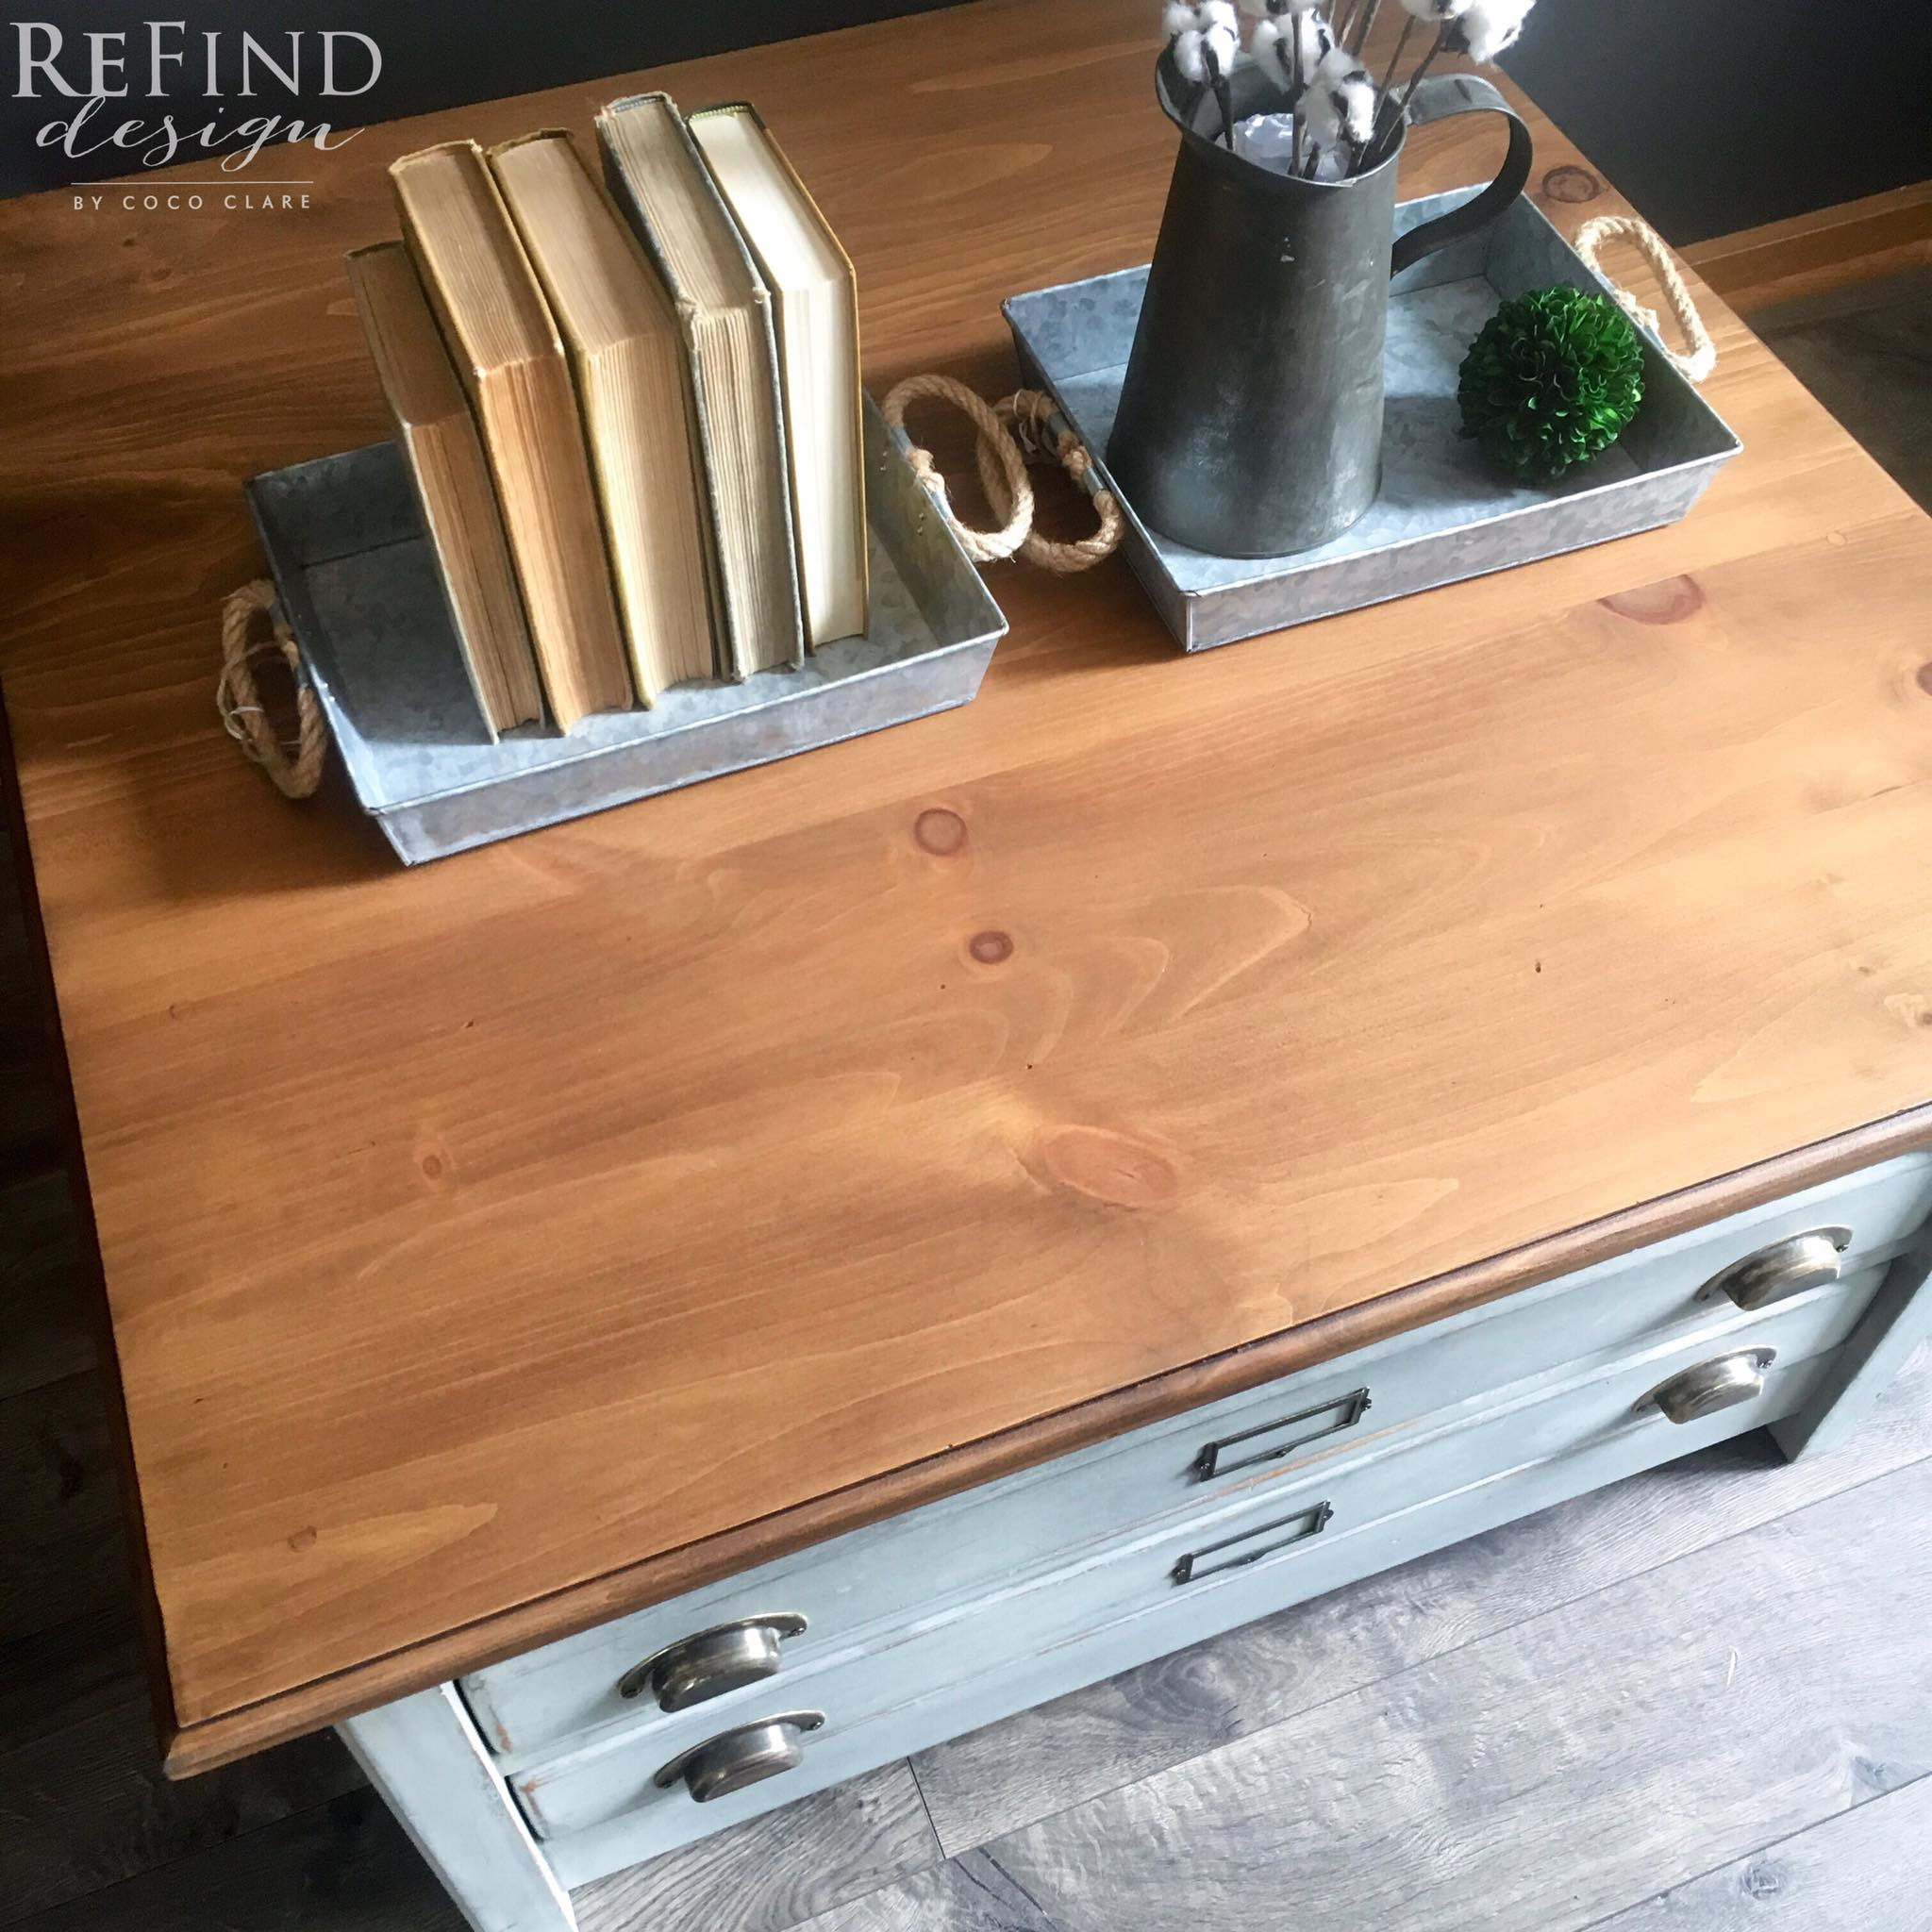 Furniture design ideas featuring water based wood stains general antique oak water based stained dresser top nvjuhfo Image collections